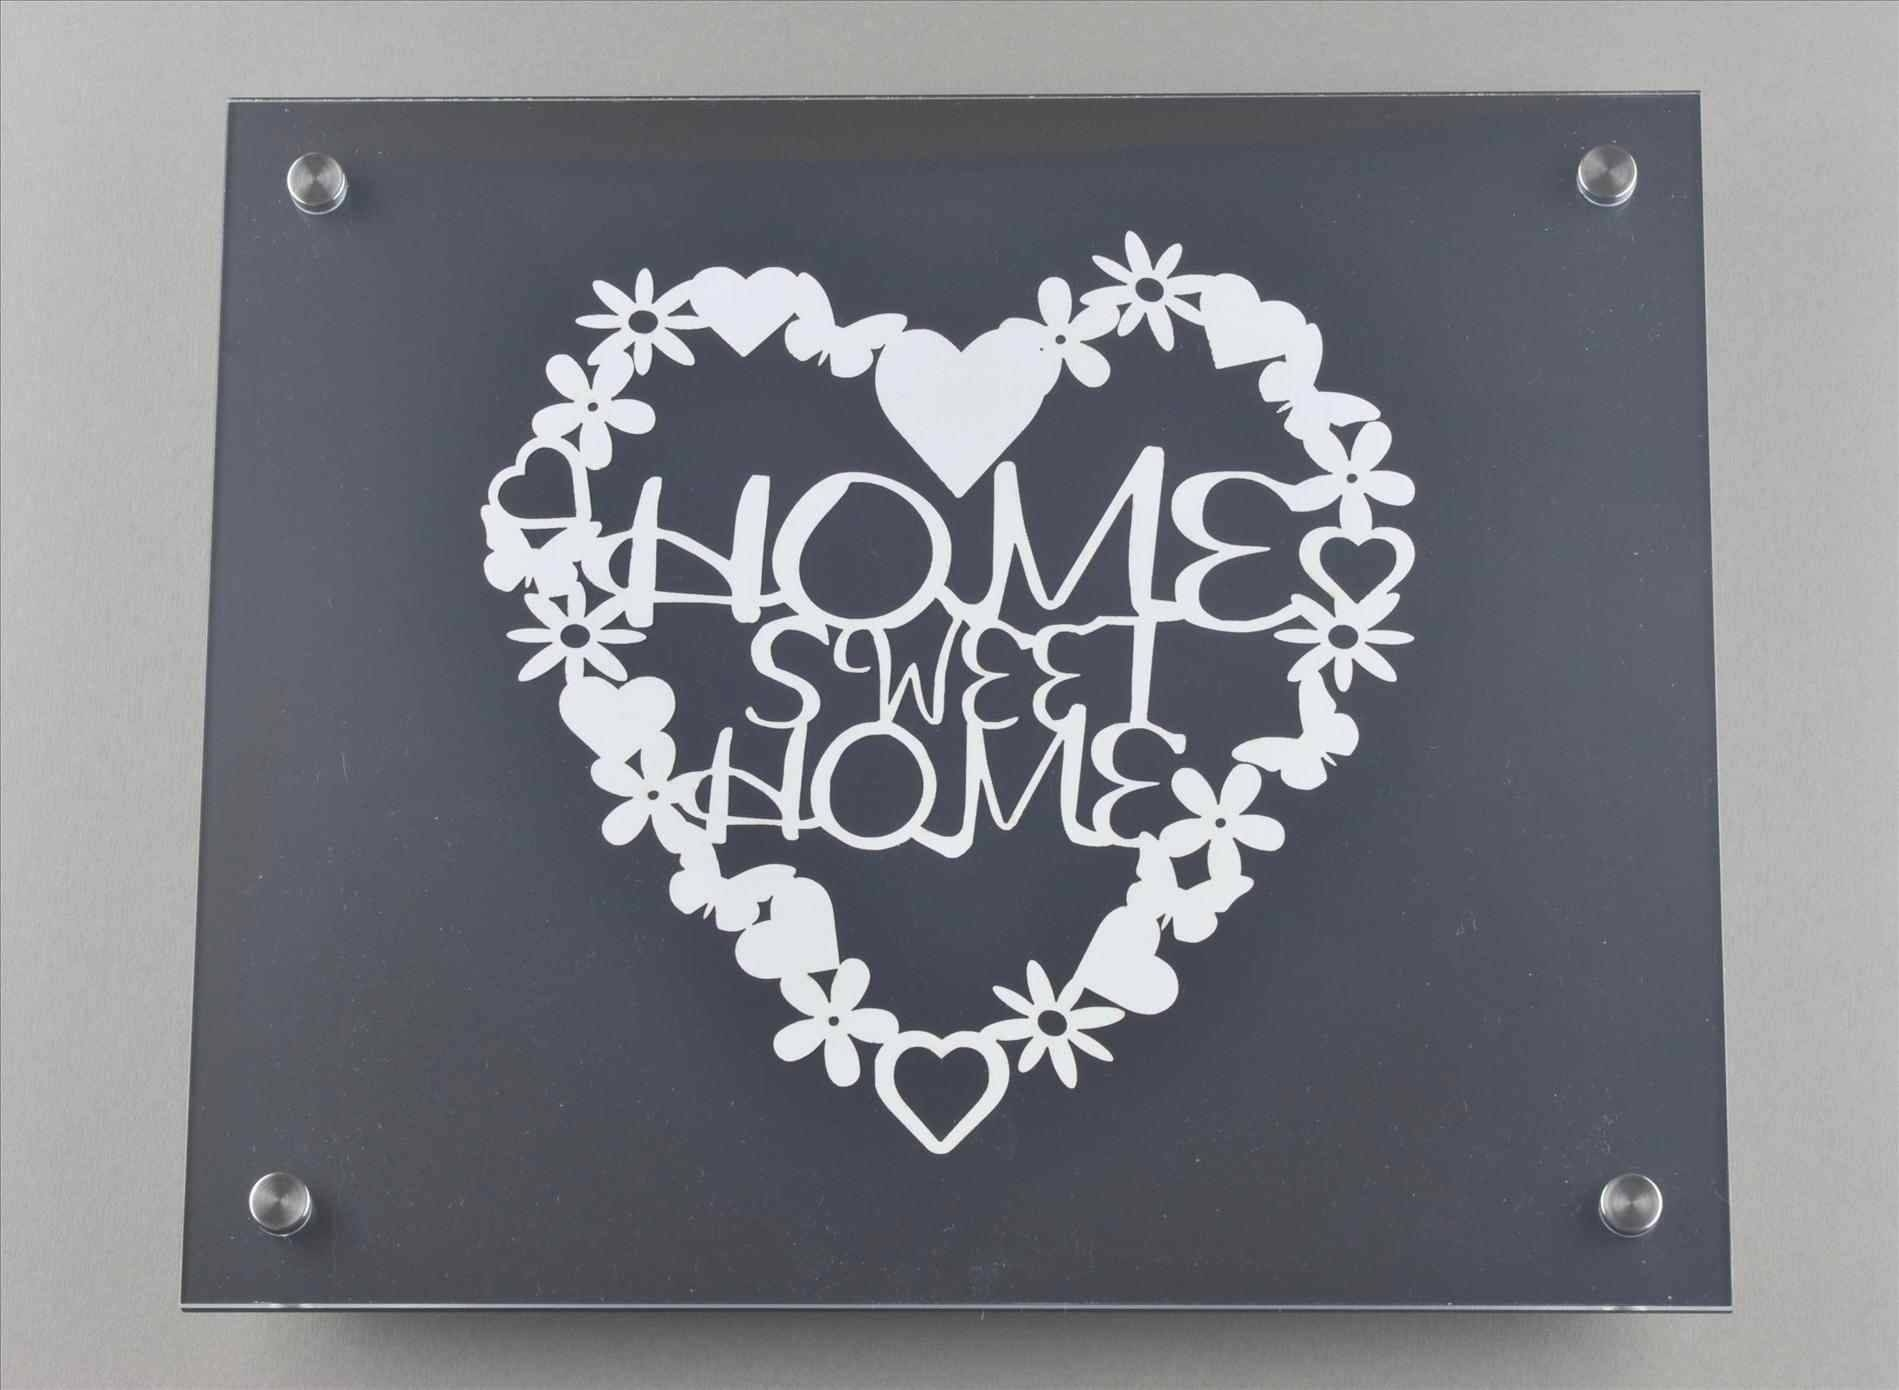 Ideas With Big Cake Decor Home Sweet Home Metal Wall Art Inside Most Popular Home Sweet Home Metal Wall Art (Gallery 14 of 20)